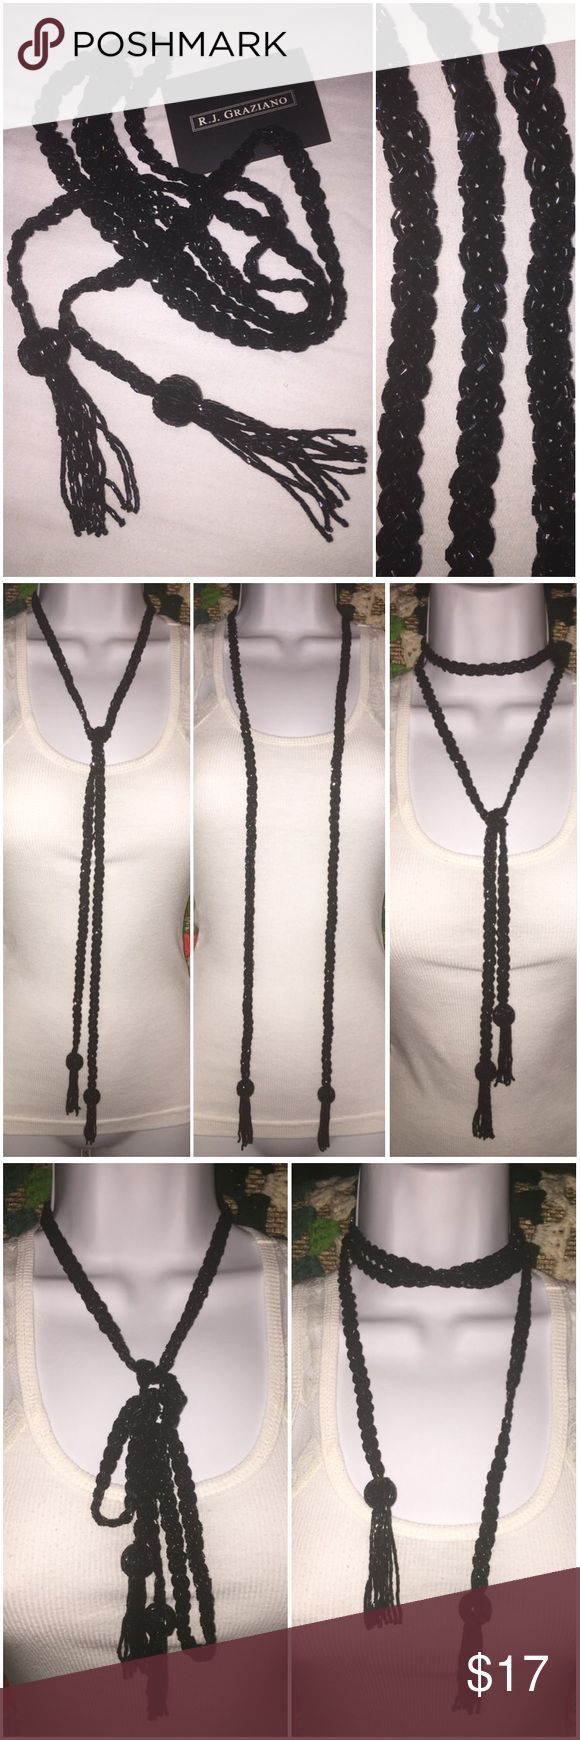 """R.J. Graziano black beaded lariat tassel necklace Gorgeous R.J. Graziano black beaded lariat tassel necklace. A timeless design captured in extraordinary detail. A Finely crafted creation from hand-fashioned black beads; with a braided design that ends in beaded balls with tassel dangle ends. So many ways to wear this lariat (some ways shown in pictures), very versatile! Compliments any wardrobe. Measures: 54"""" long. Brand new without tags, carded, in poly bag! R.J. Graziano Jewelry Necklaces"""